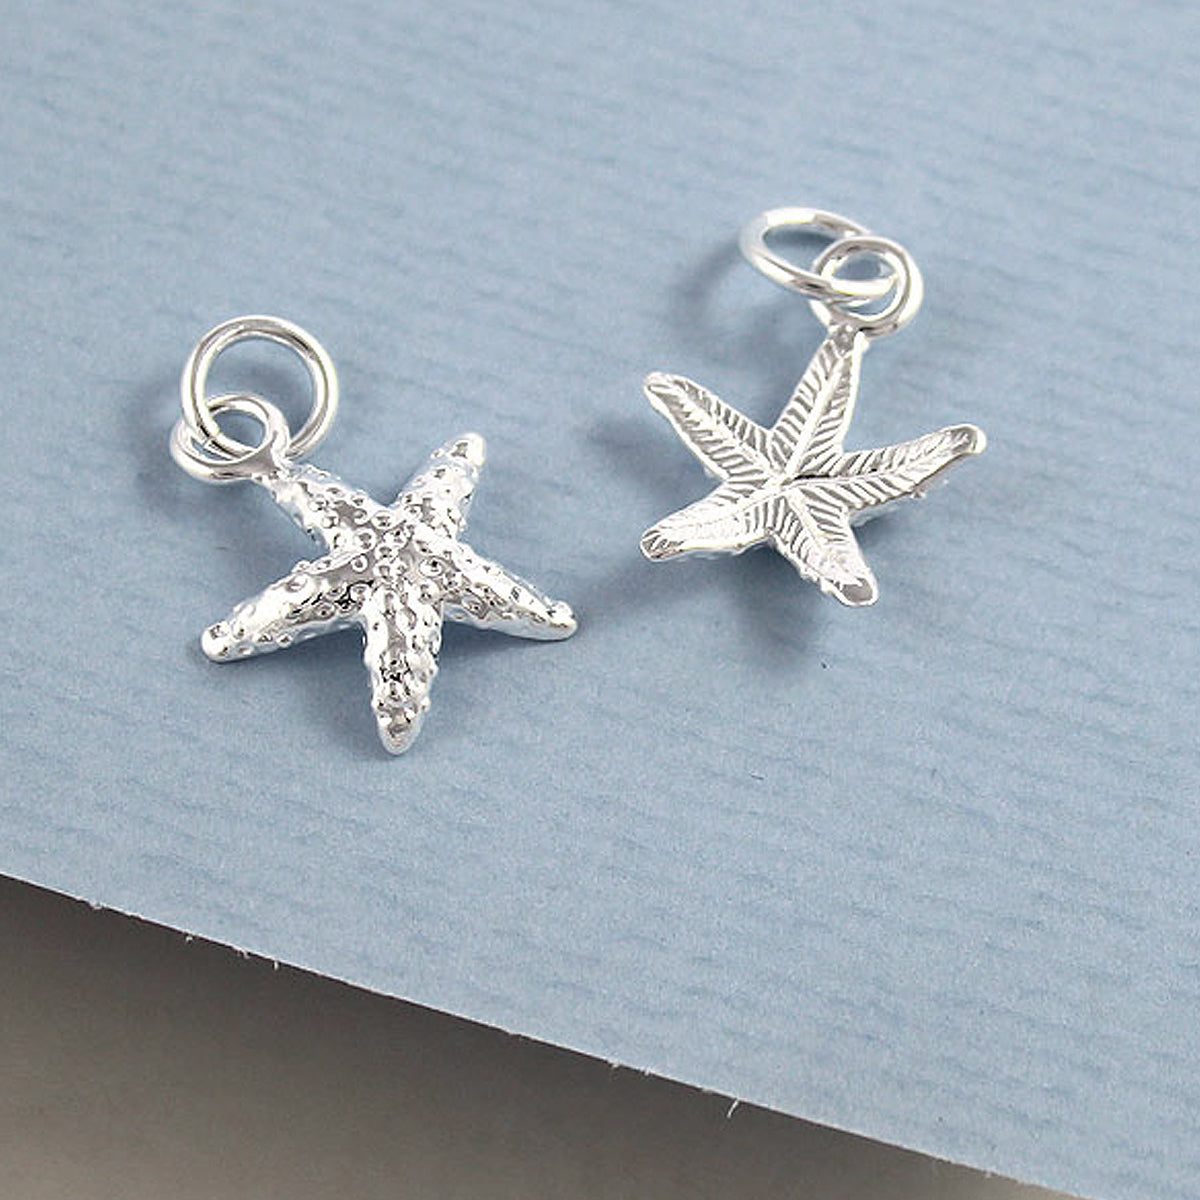 Starfish Silver Charm for Bracelet and necklace from Scarlett Jewellery